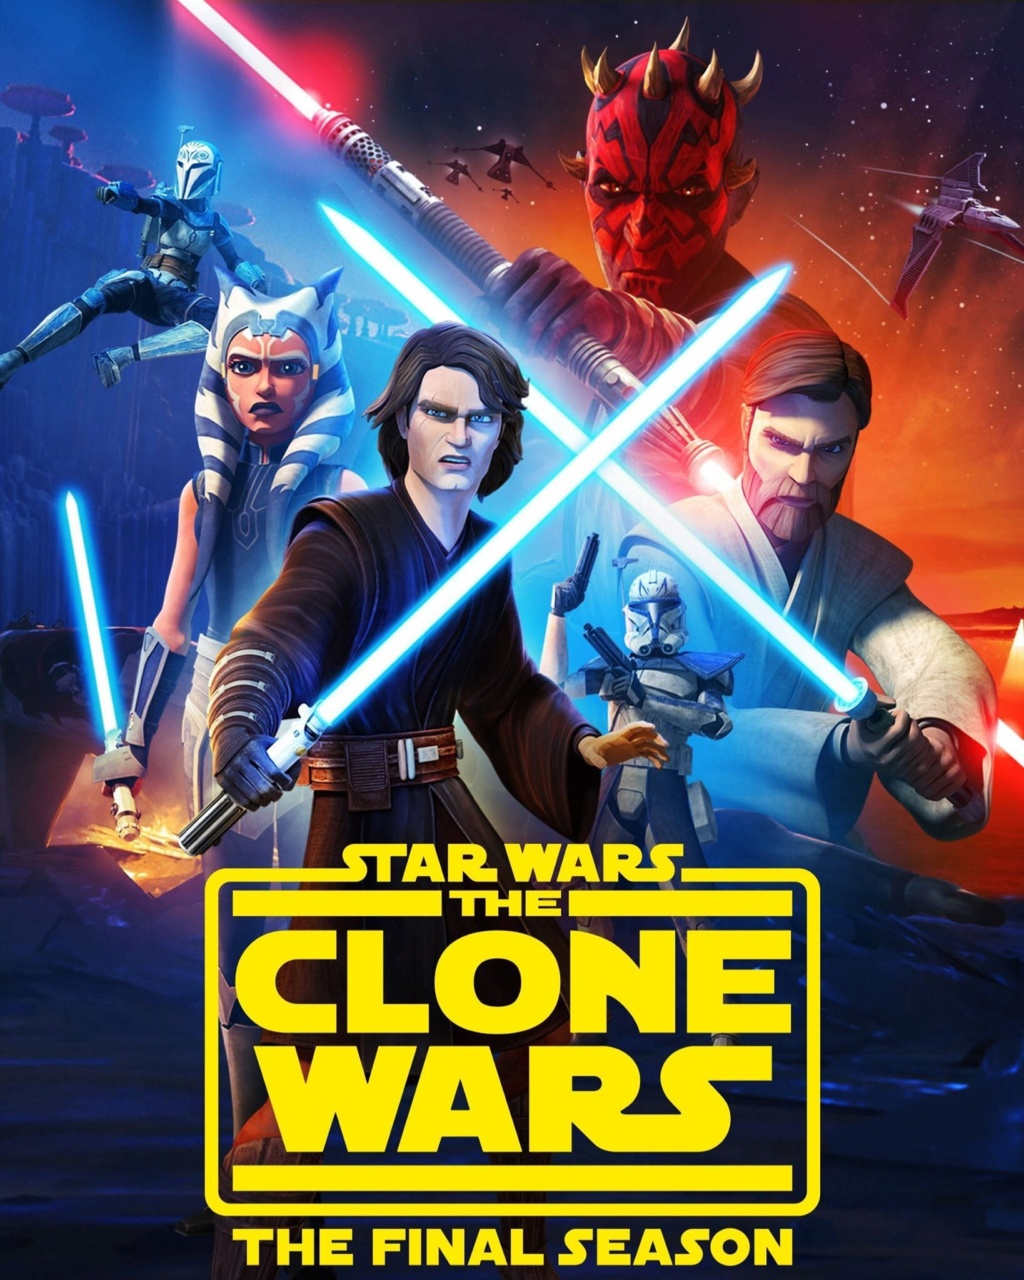 STAR WARS THE CLONE WARS - NEWS - NOUVELLE SAISON - DVD [3] - Page 5 Poster75